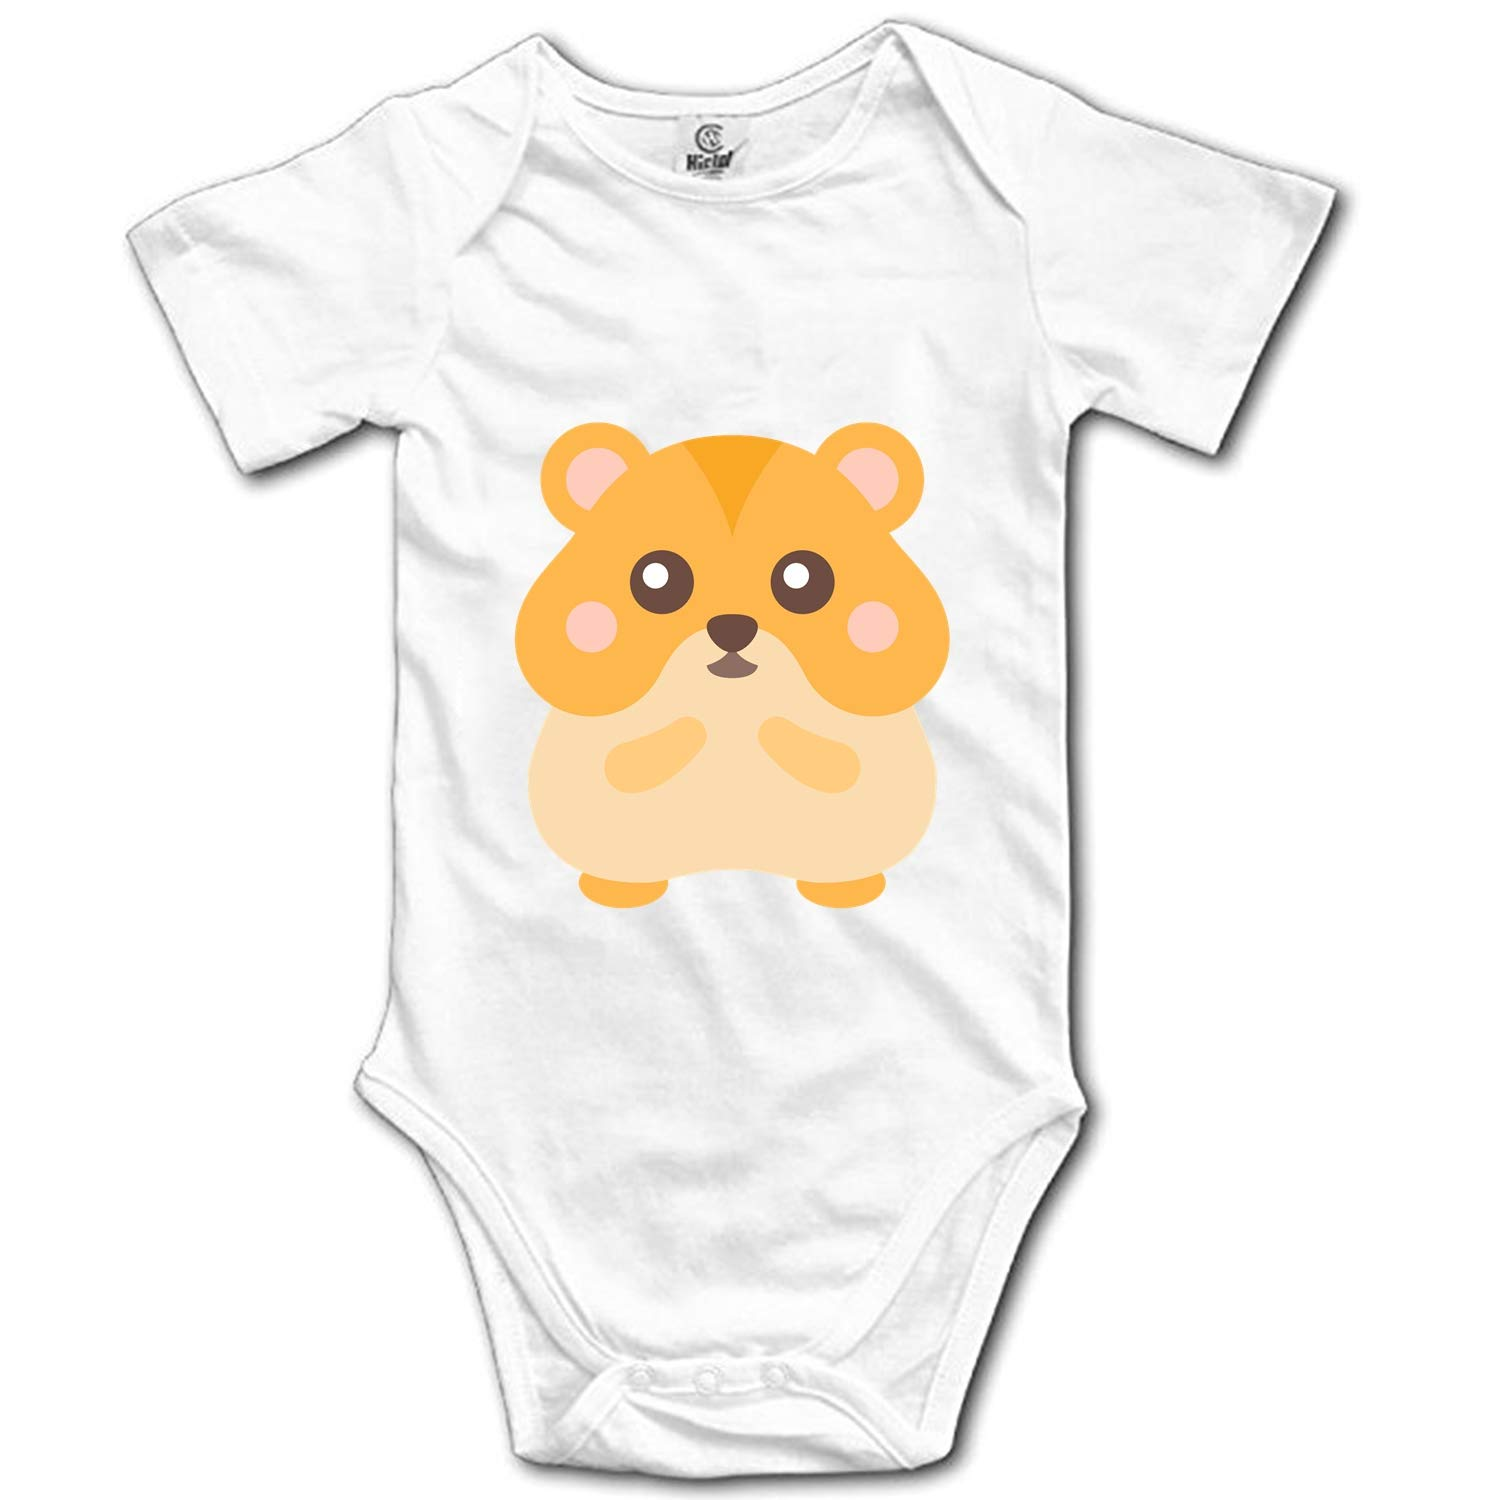 Baby Native Bird Bodysuits Short Sleeve Rompers Outfits Summer Clothes